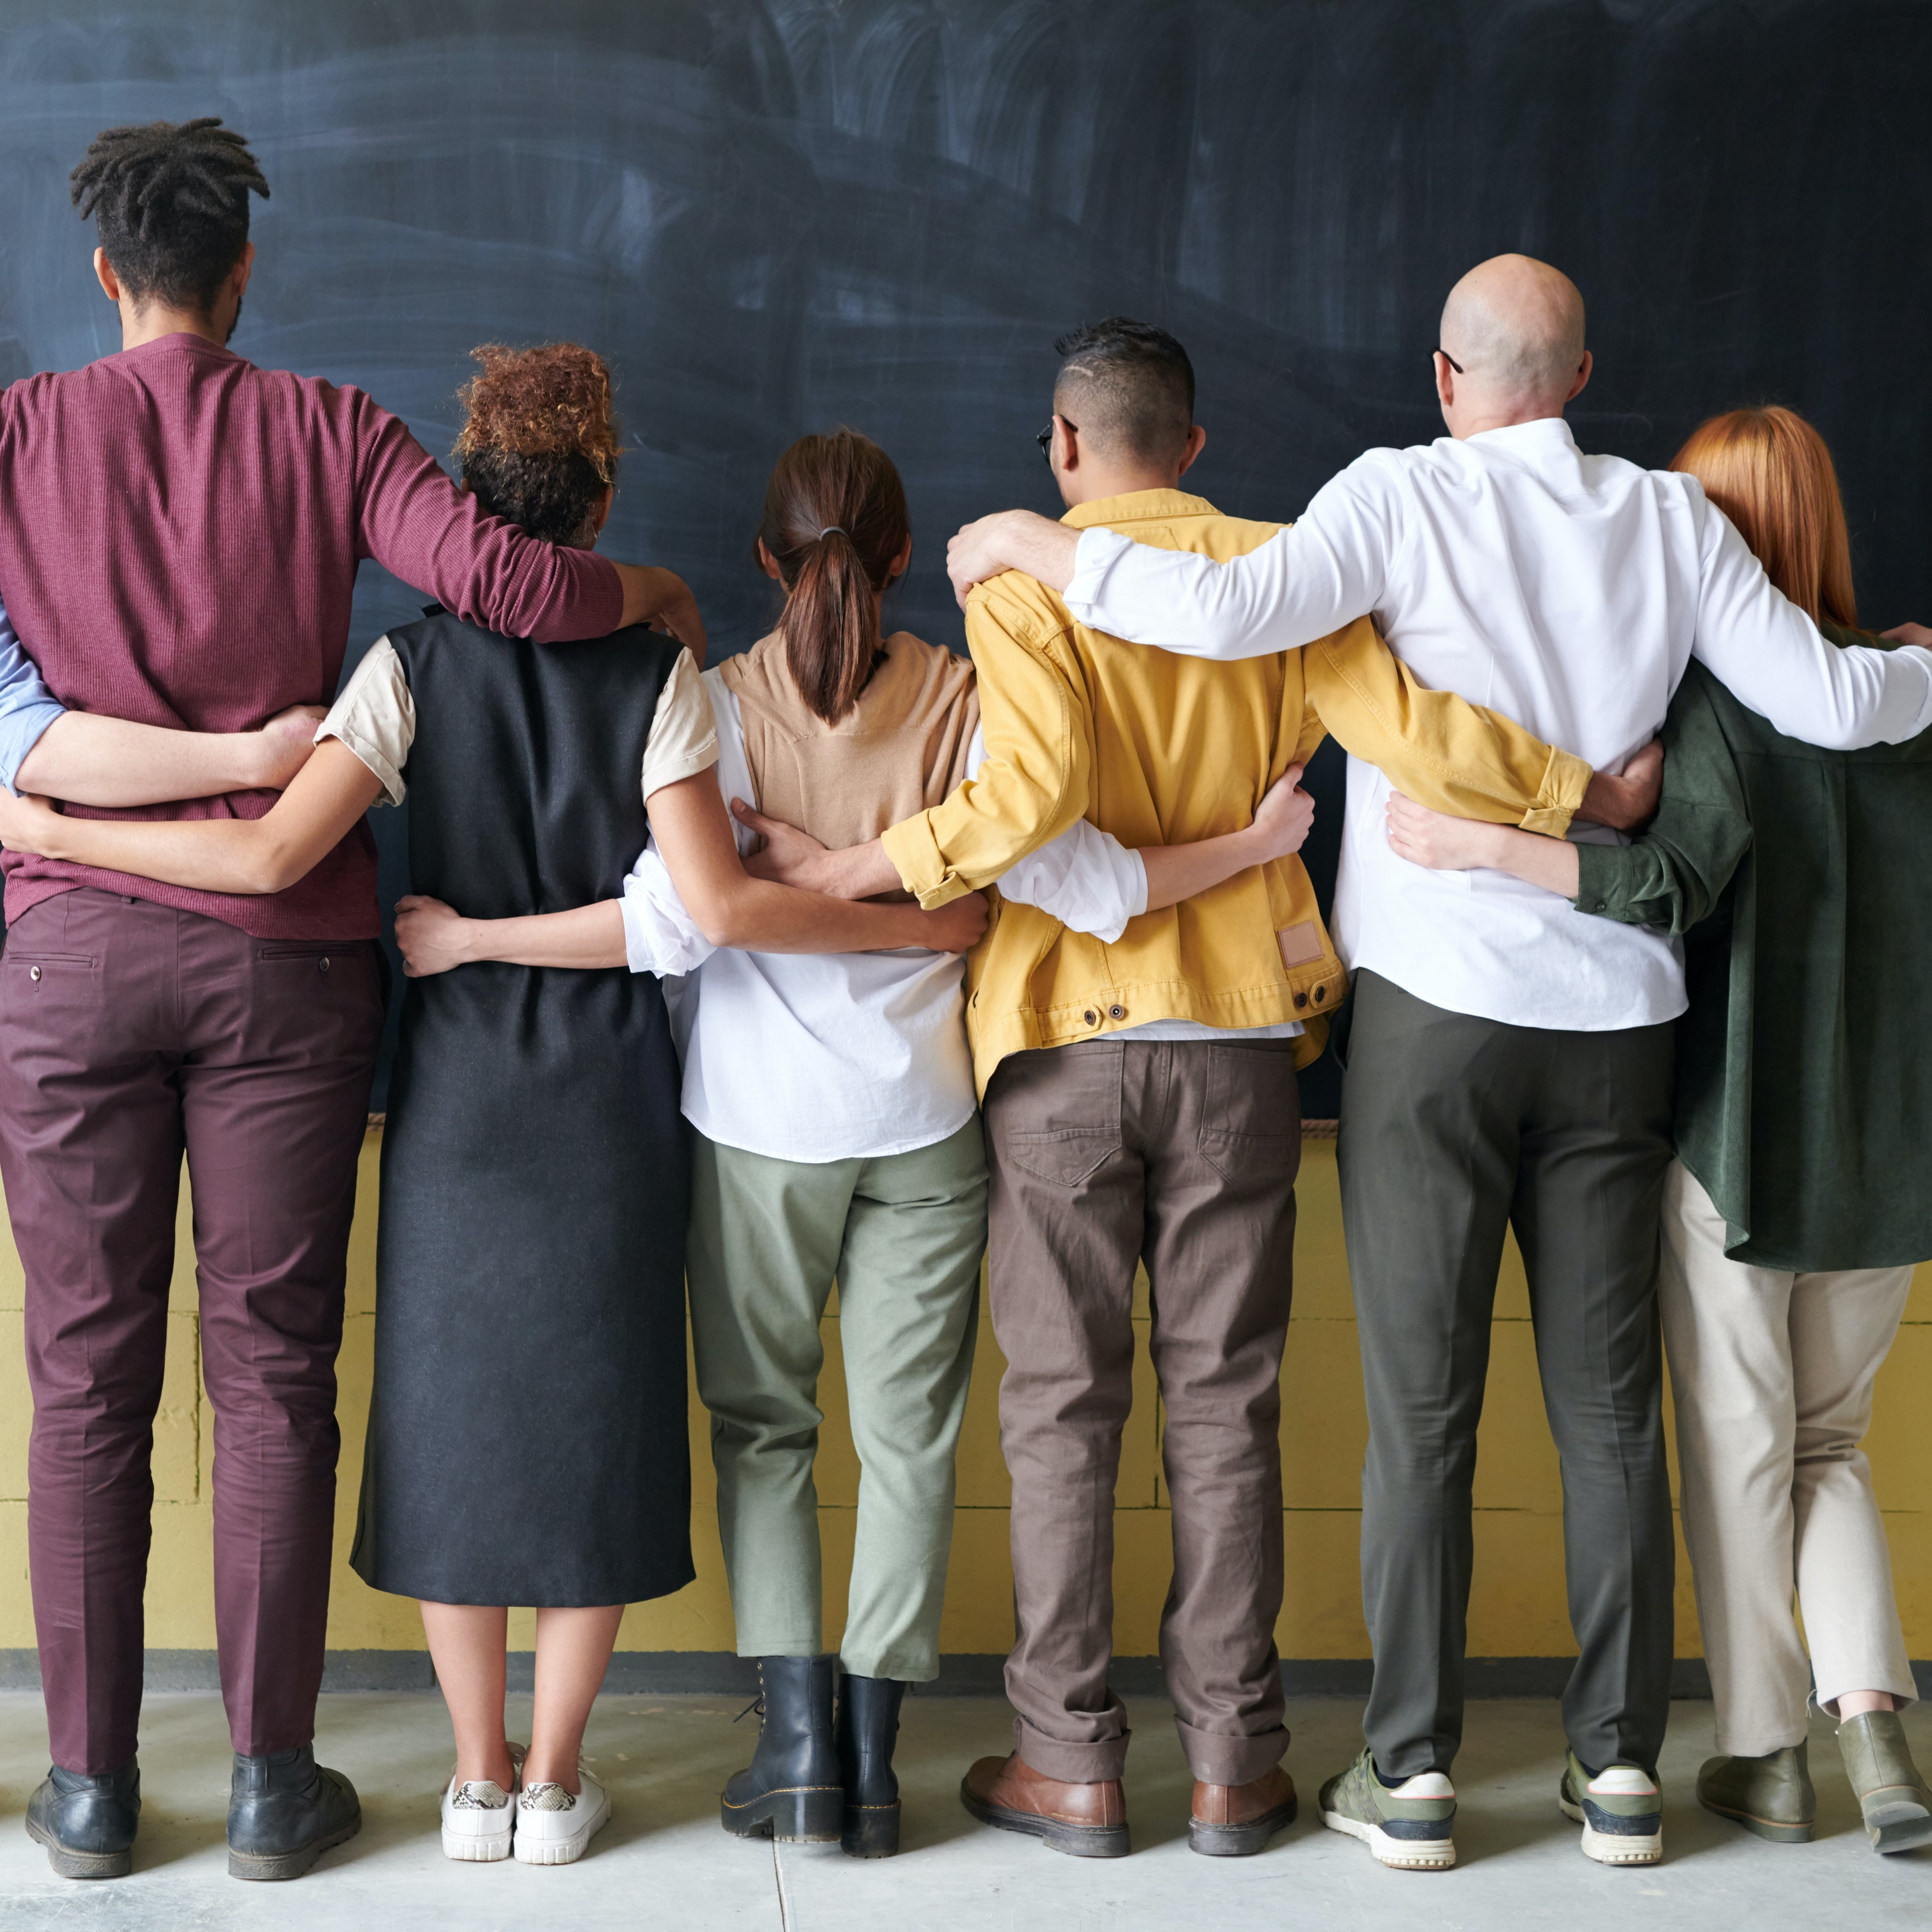 Diverse People Standing Together